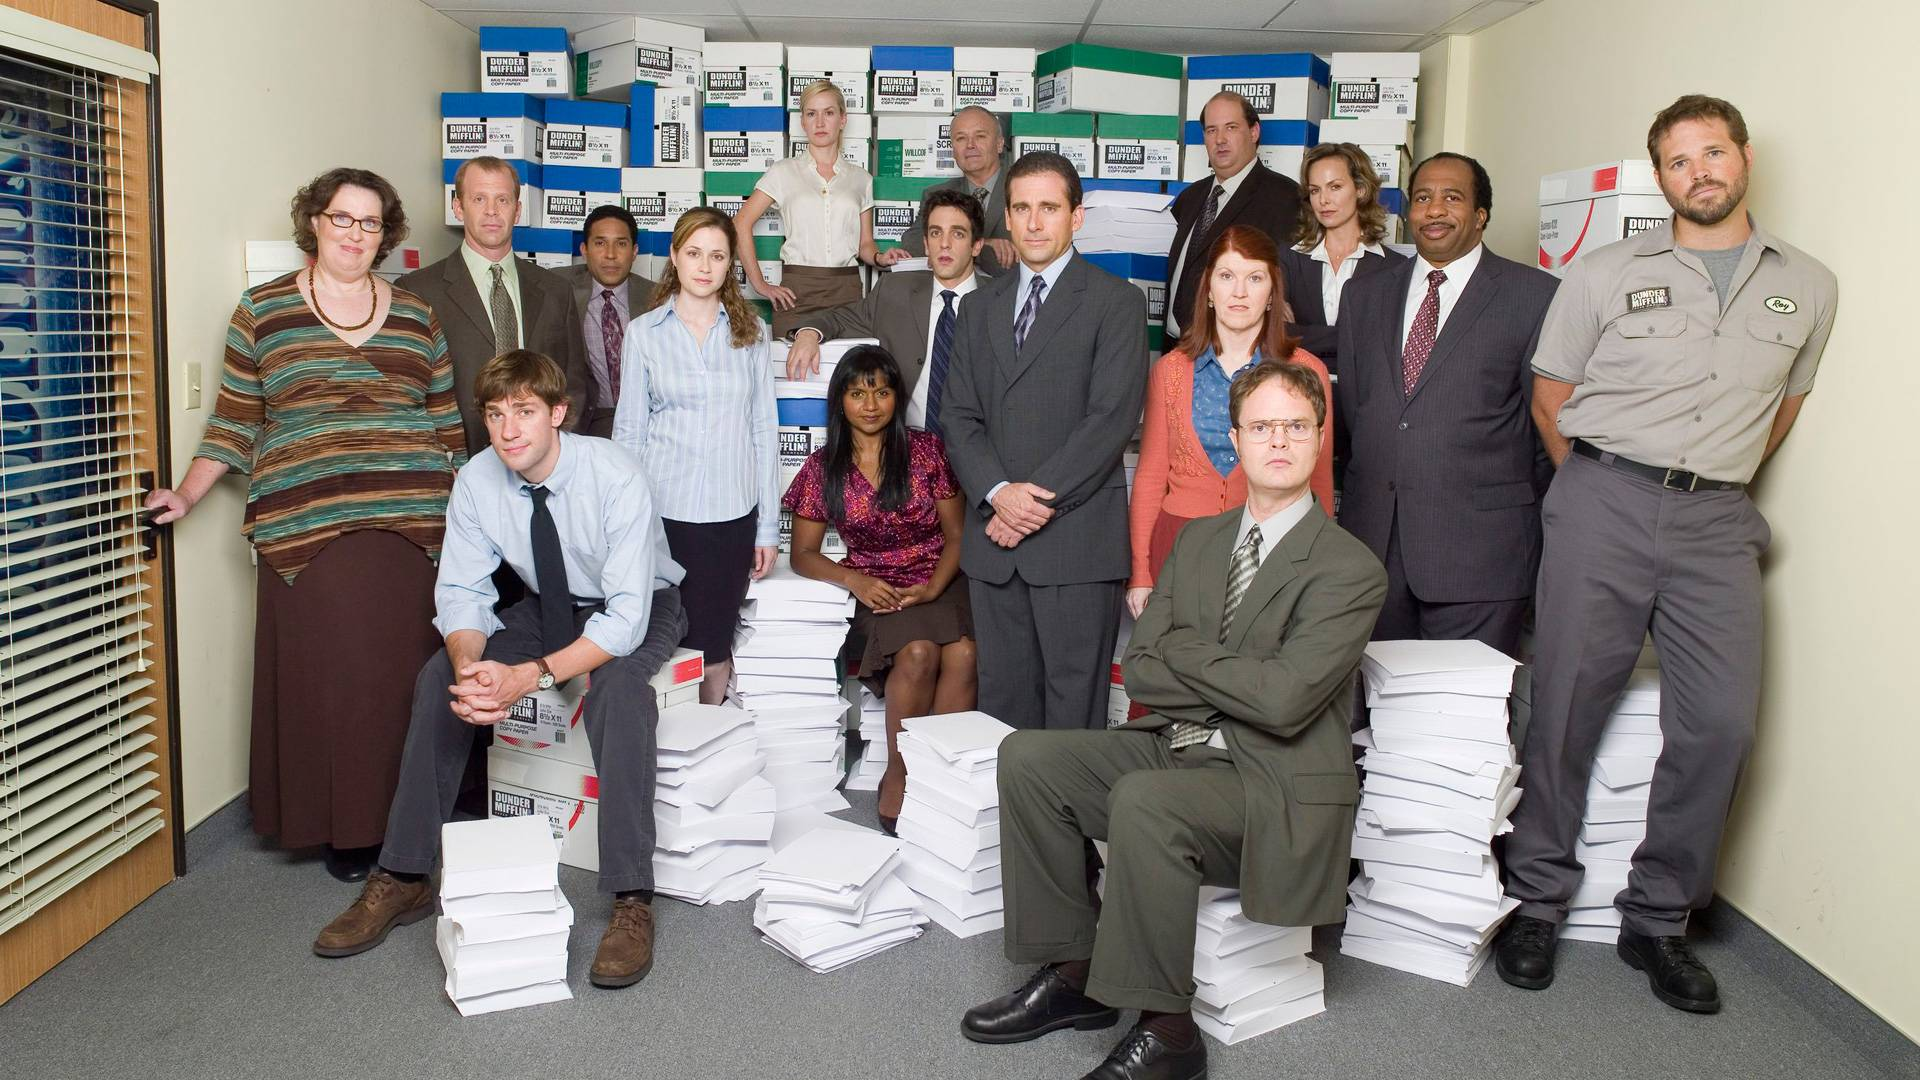 office hd wallpapers. The Office Full HD Wallpaper 1920x1080 Office Hd Wallpapers